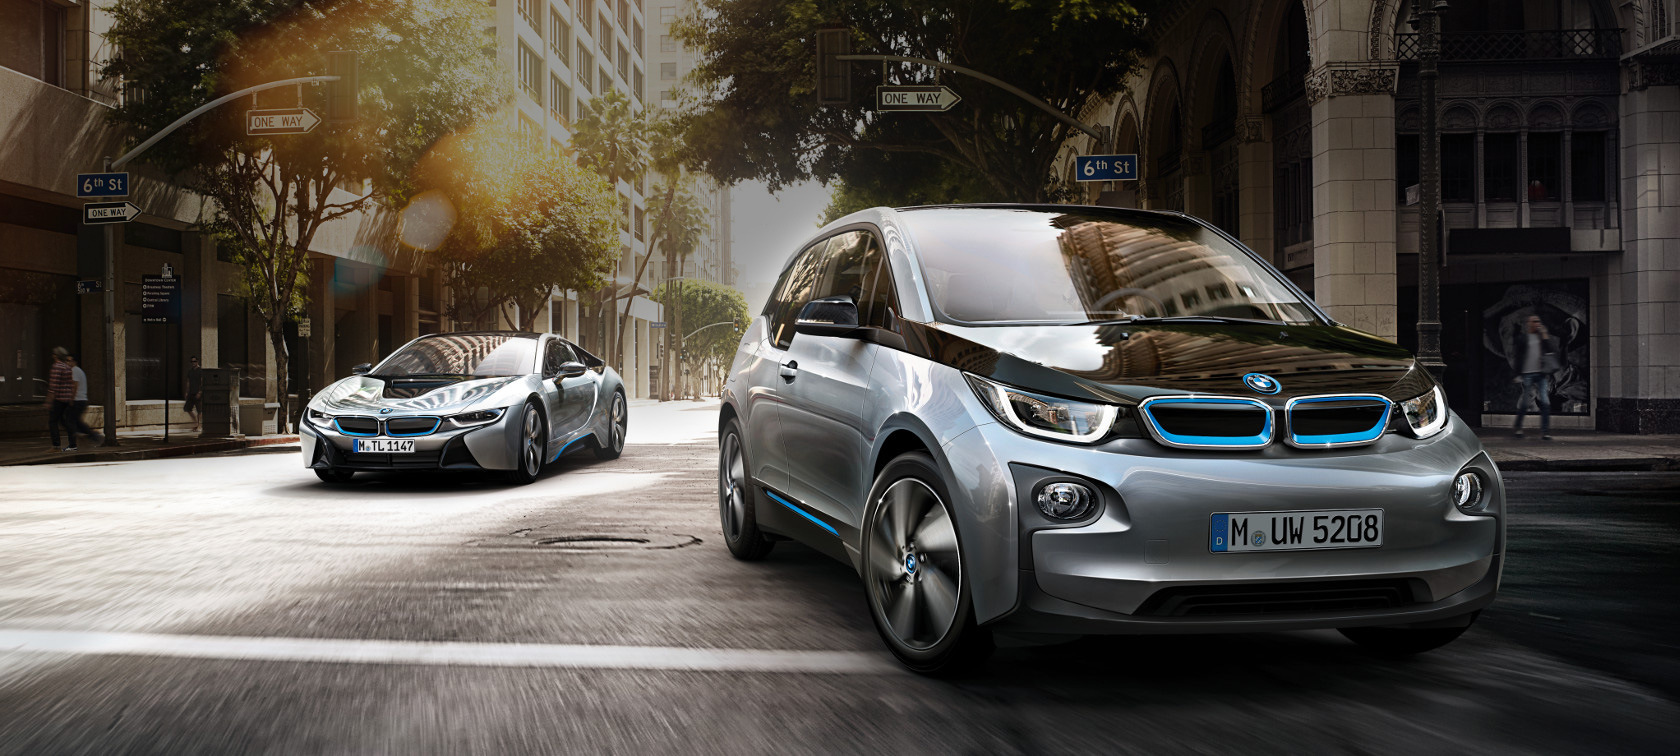 BMW i8 twin cars: metallic main color with blue accents